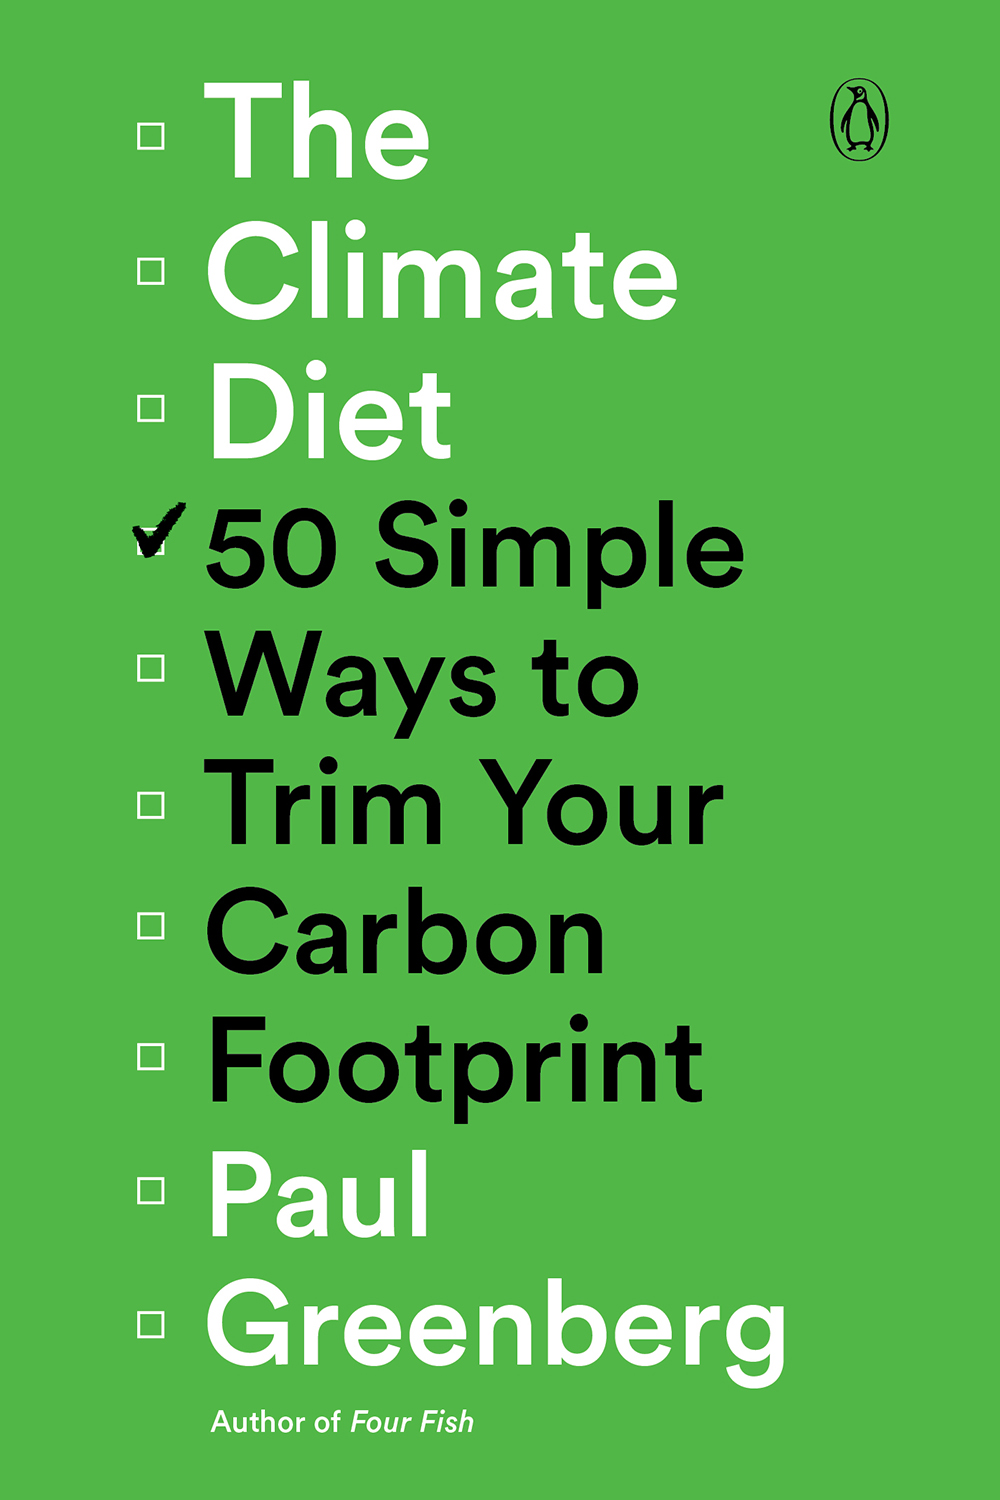 The Climate Diet book cover